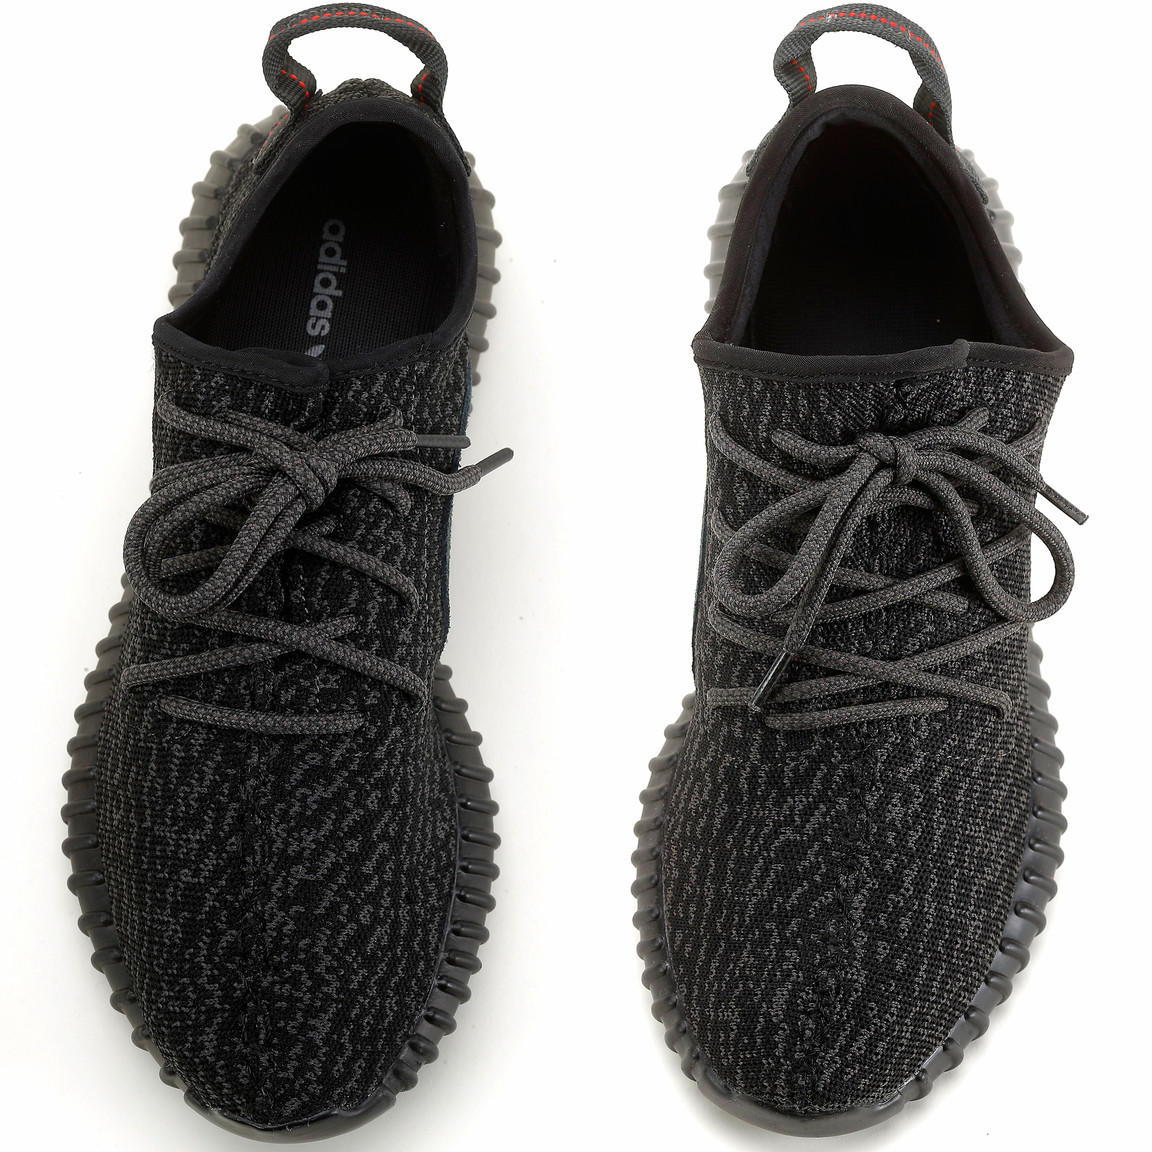 b3854cbba31 Counterfeit Yeezys and the booming sneaker black market - Los ...